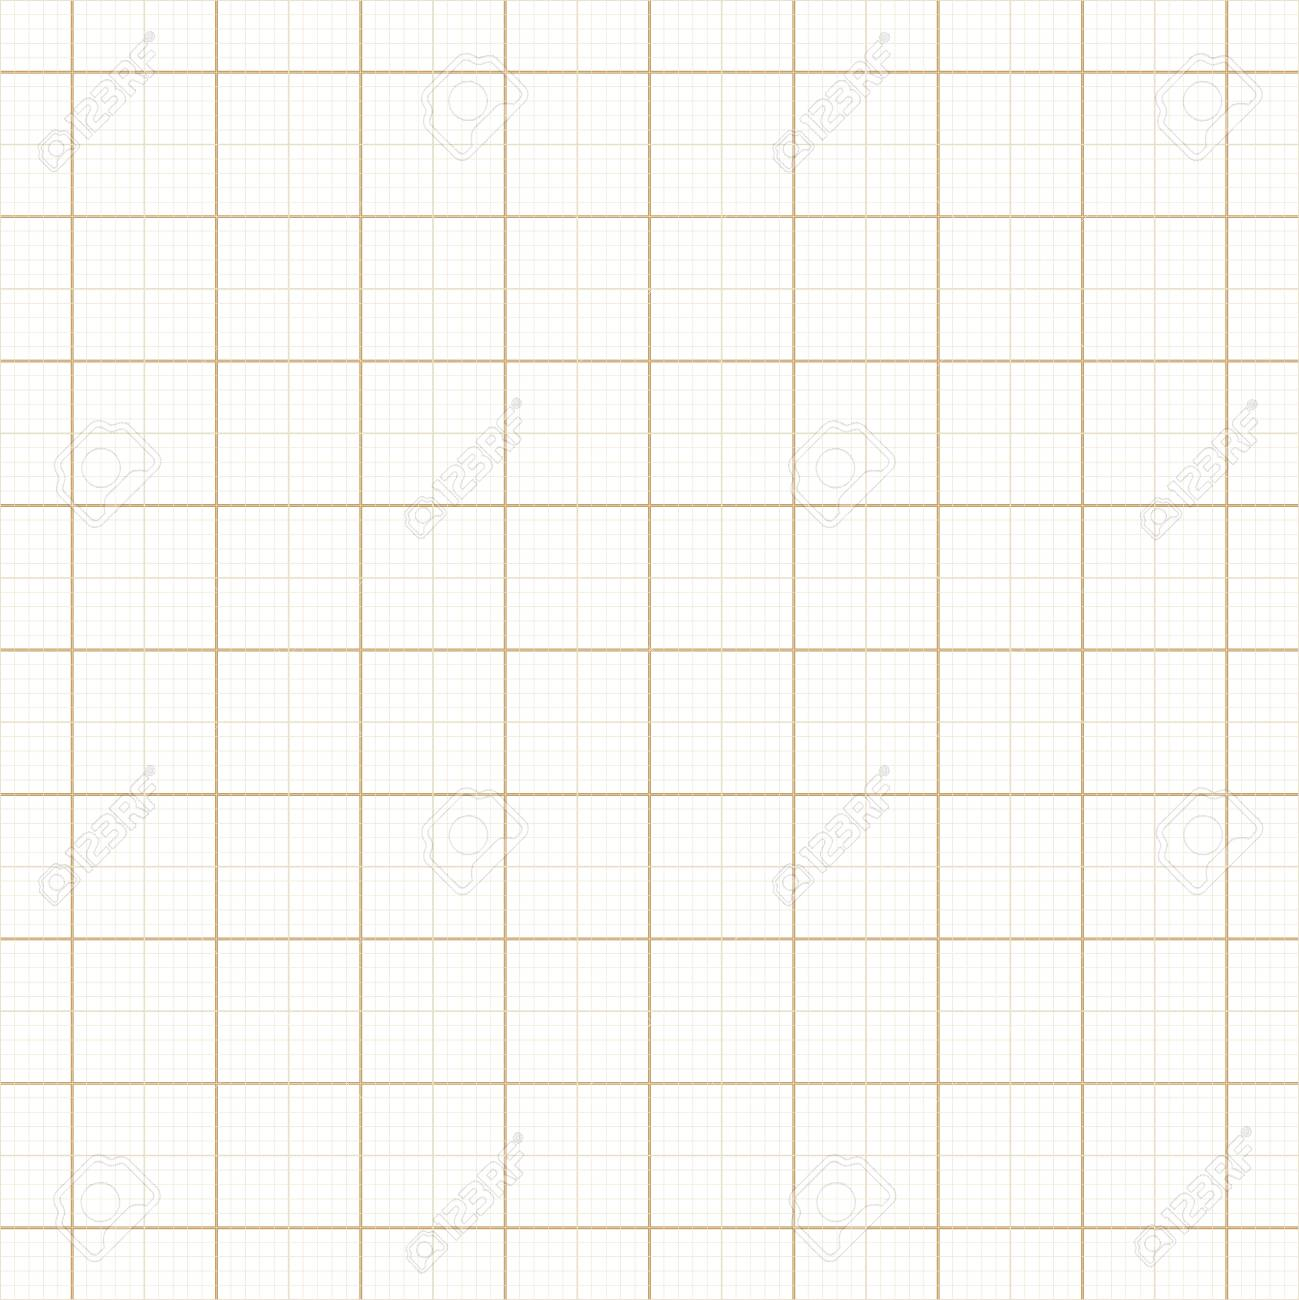 yellow architect graph paper repeat vector grid page graph